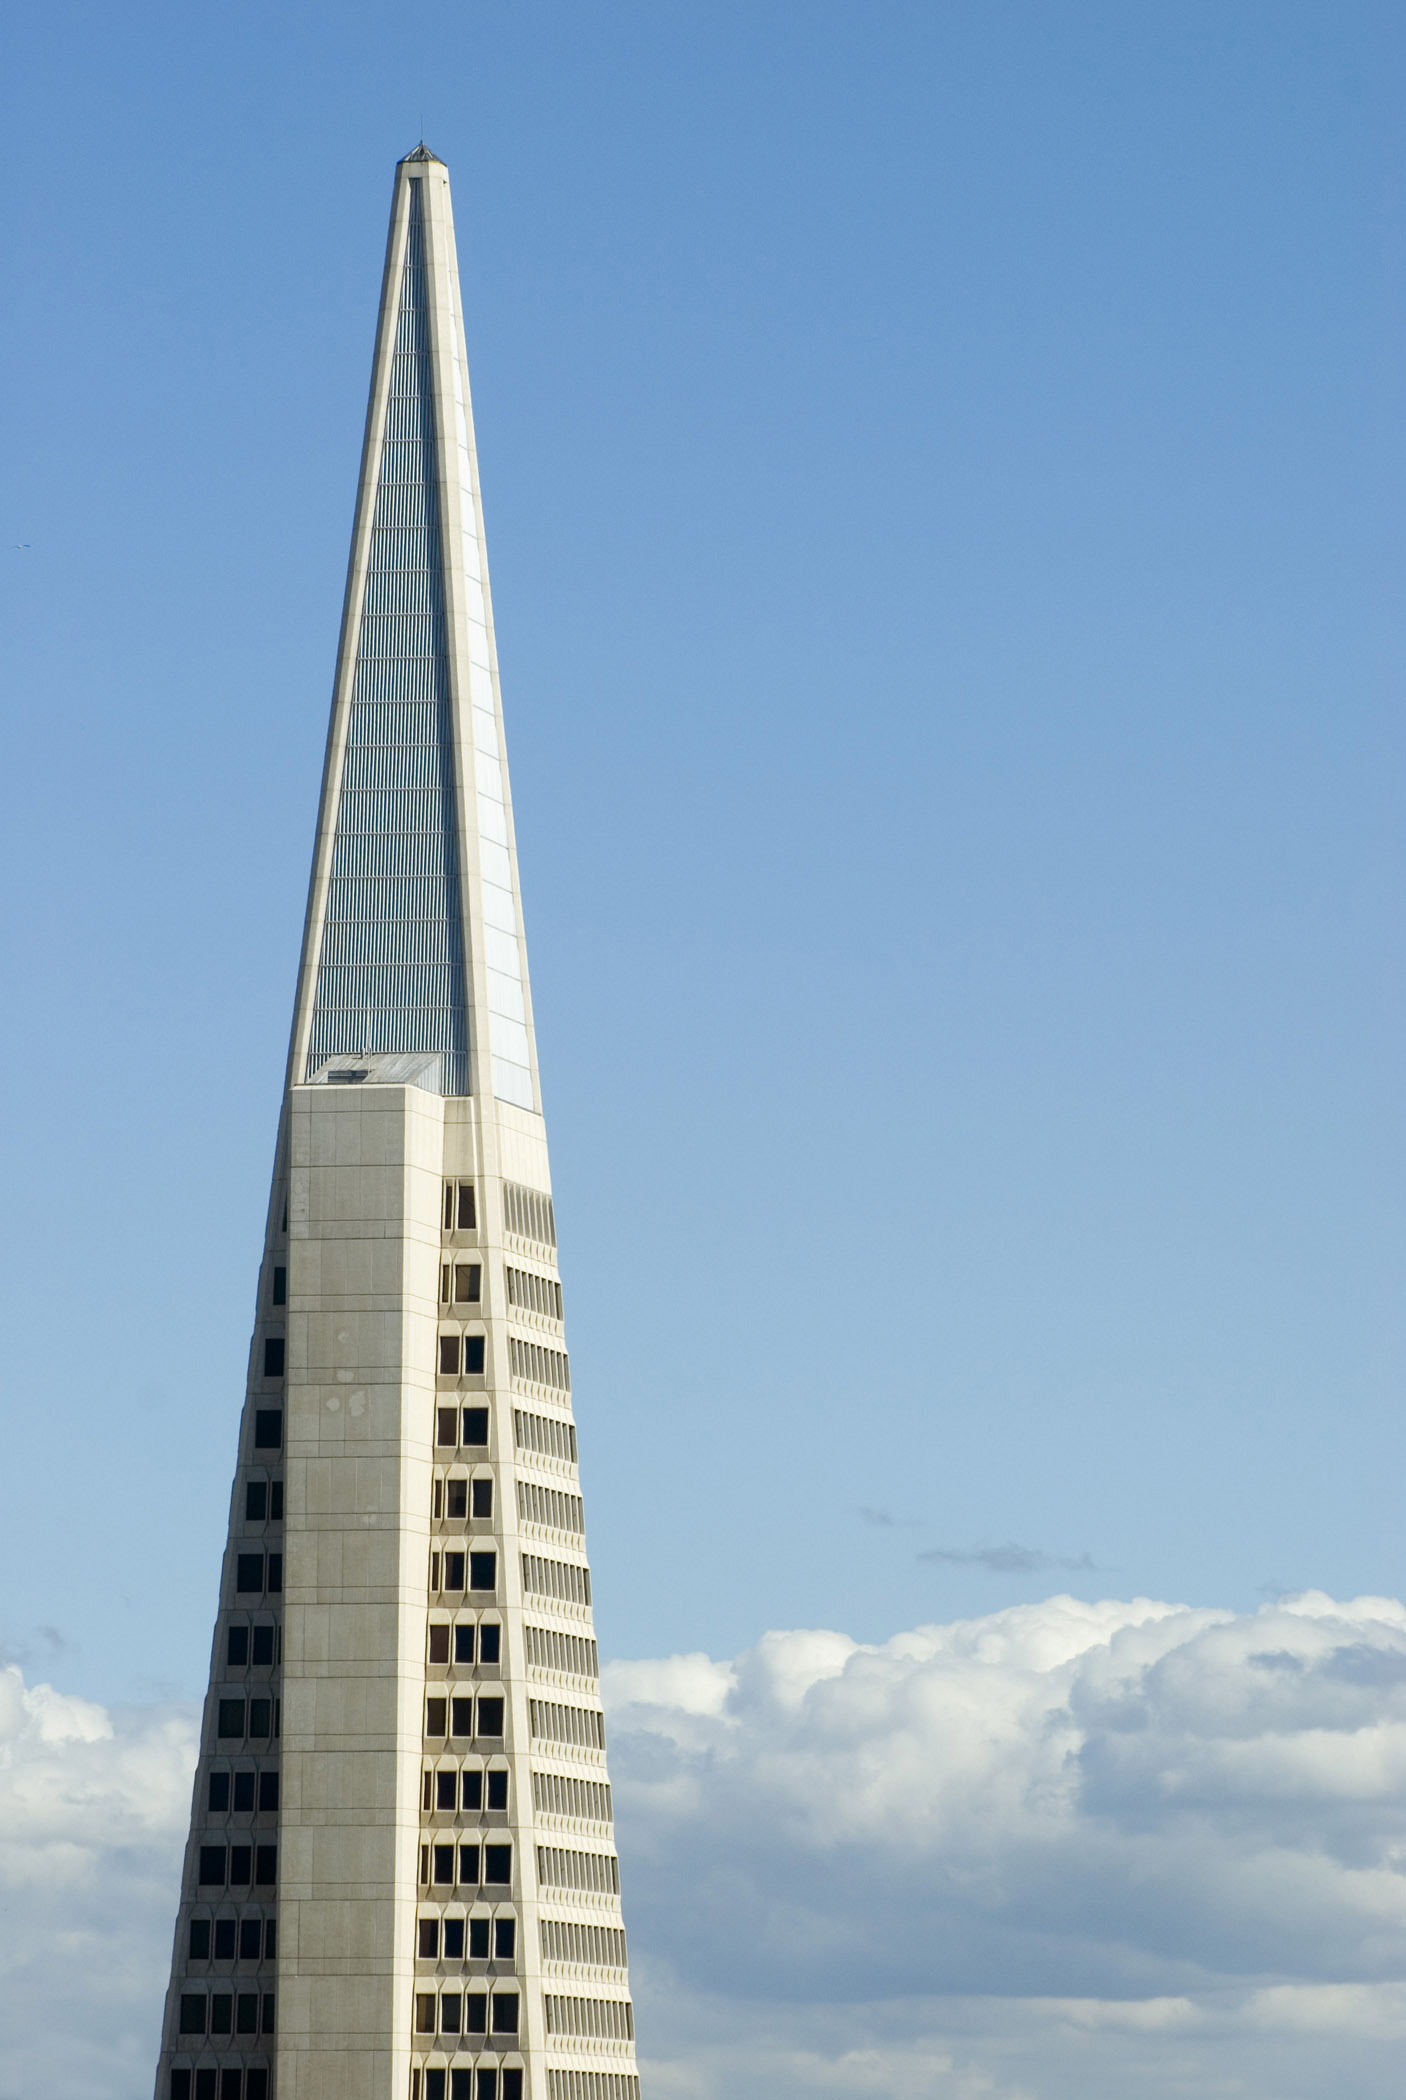 Exterior view of the facade of the Transamerica Pyramid building, San Francisco , California, USA against a sunny blue sky